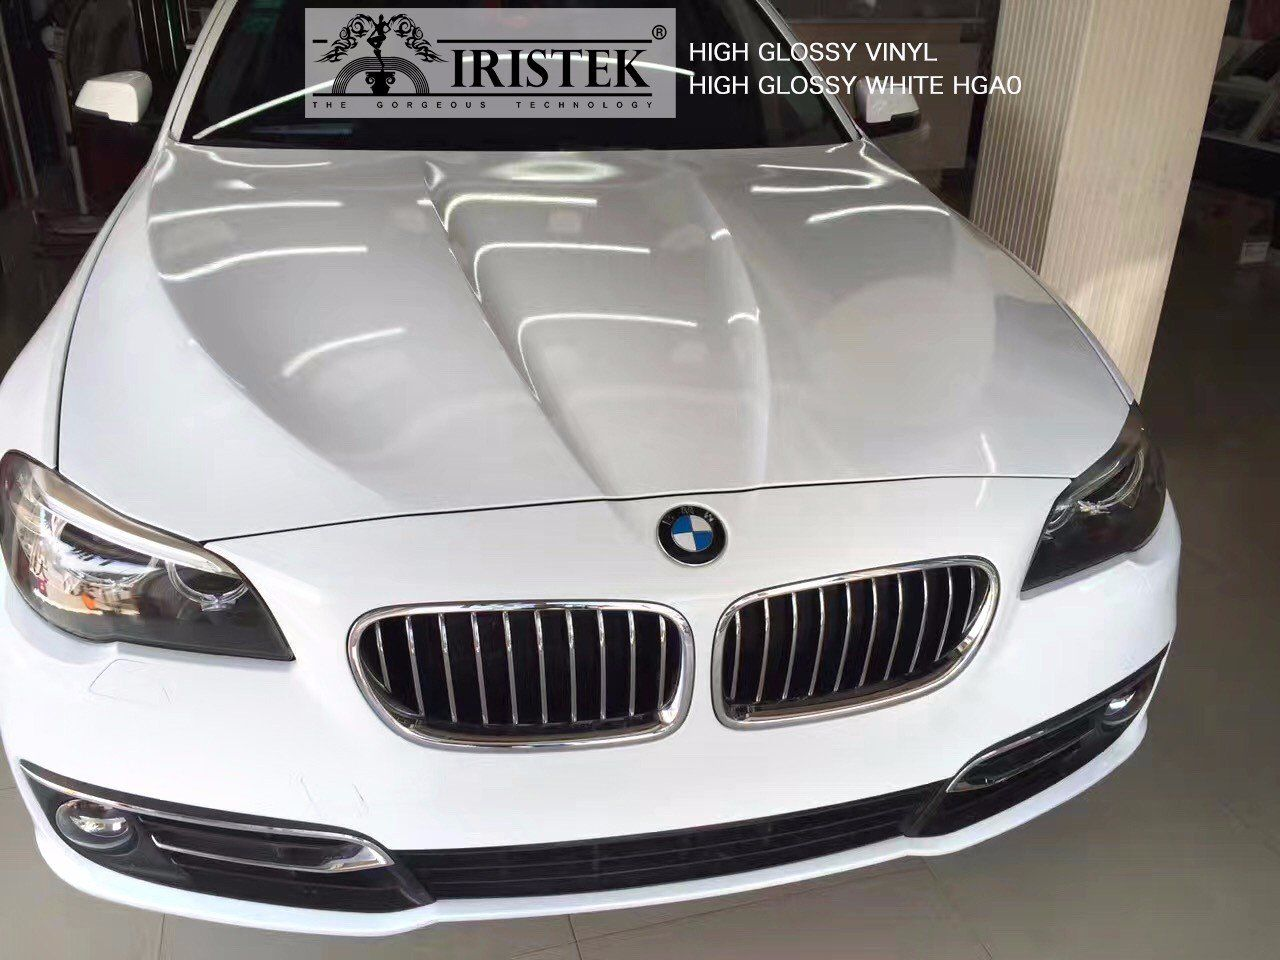 High Glossy Vinyl Hga0 Color High Glossy White Your Old Car Already Have Been Used For Many Years You Want To Renew It Iristek Vinyl Wrap Car Car Wrap Vinyl